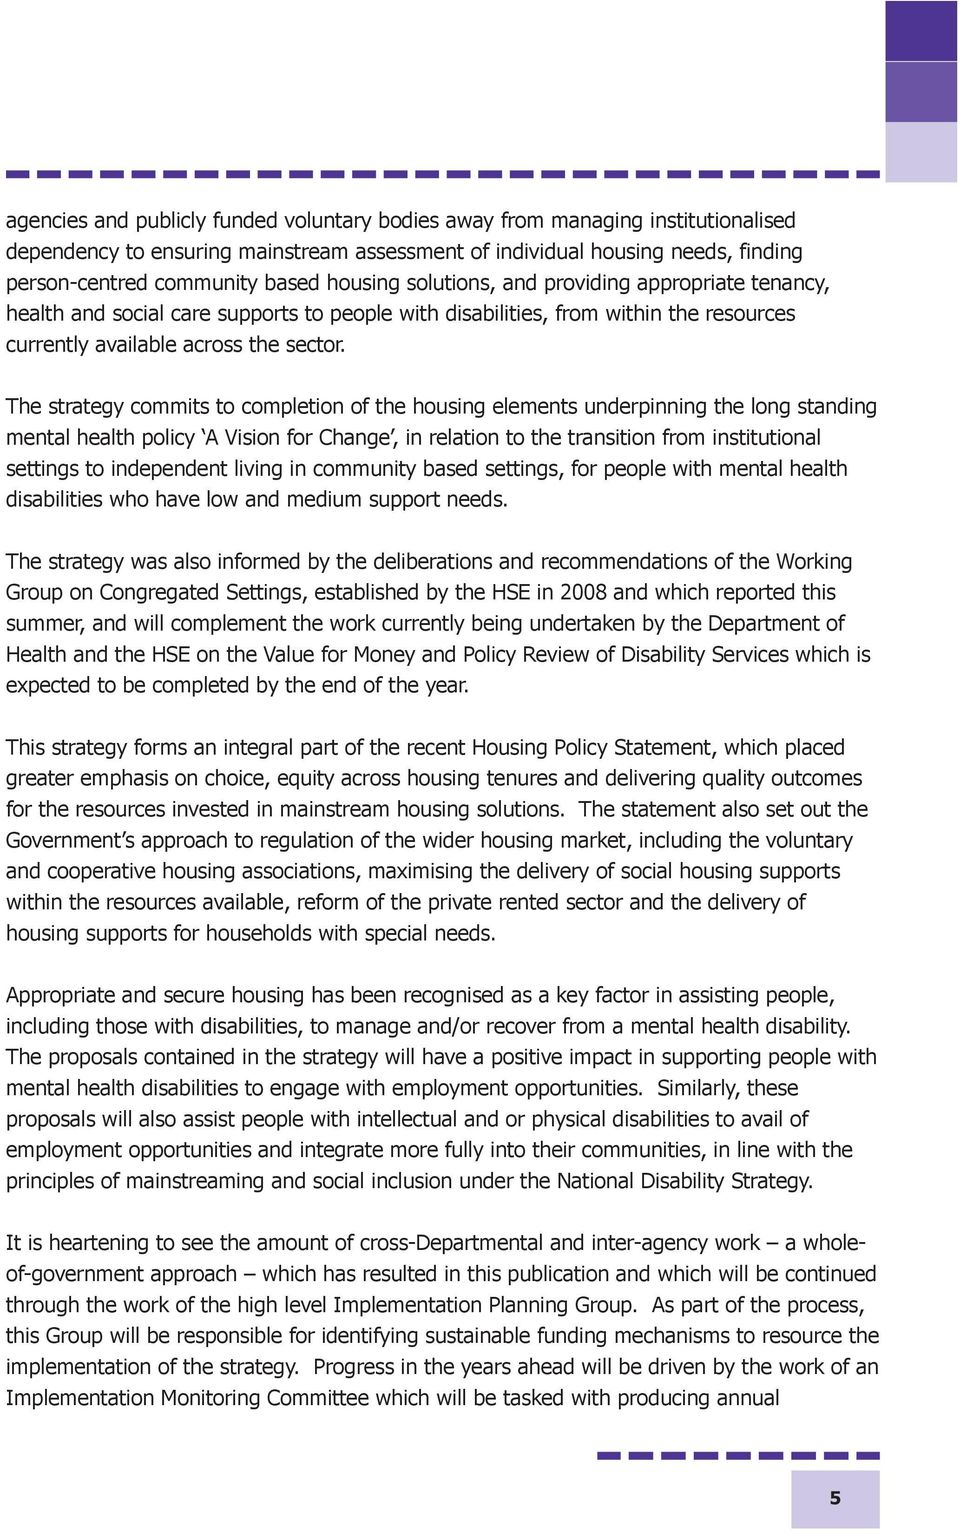 The strategy commits to completion of the housing elements underpinning the long standing mental health policy A Vision for Change, in relation to the transition from institutional settings to